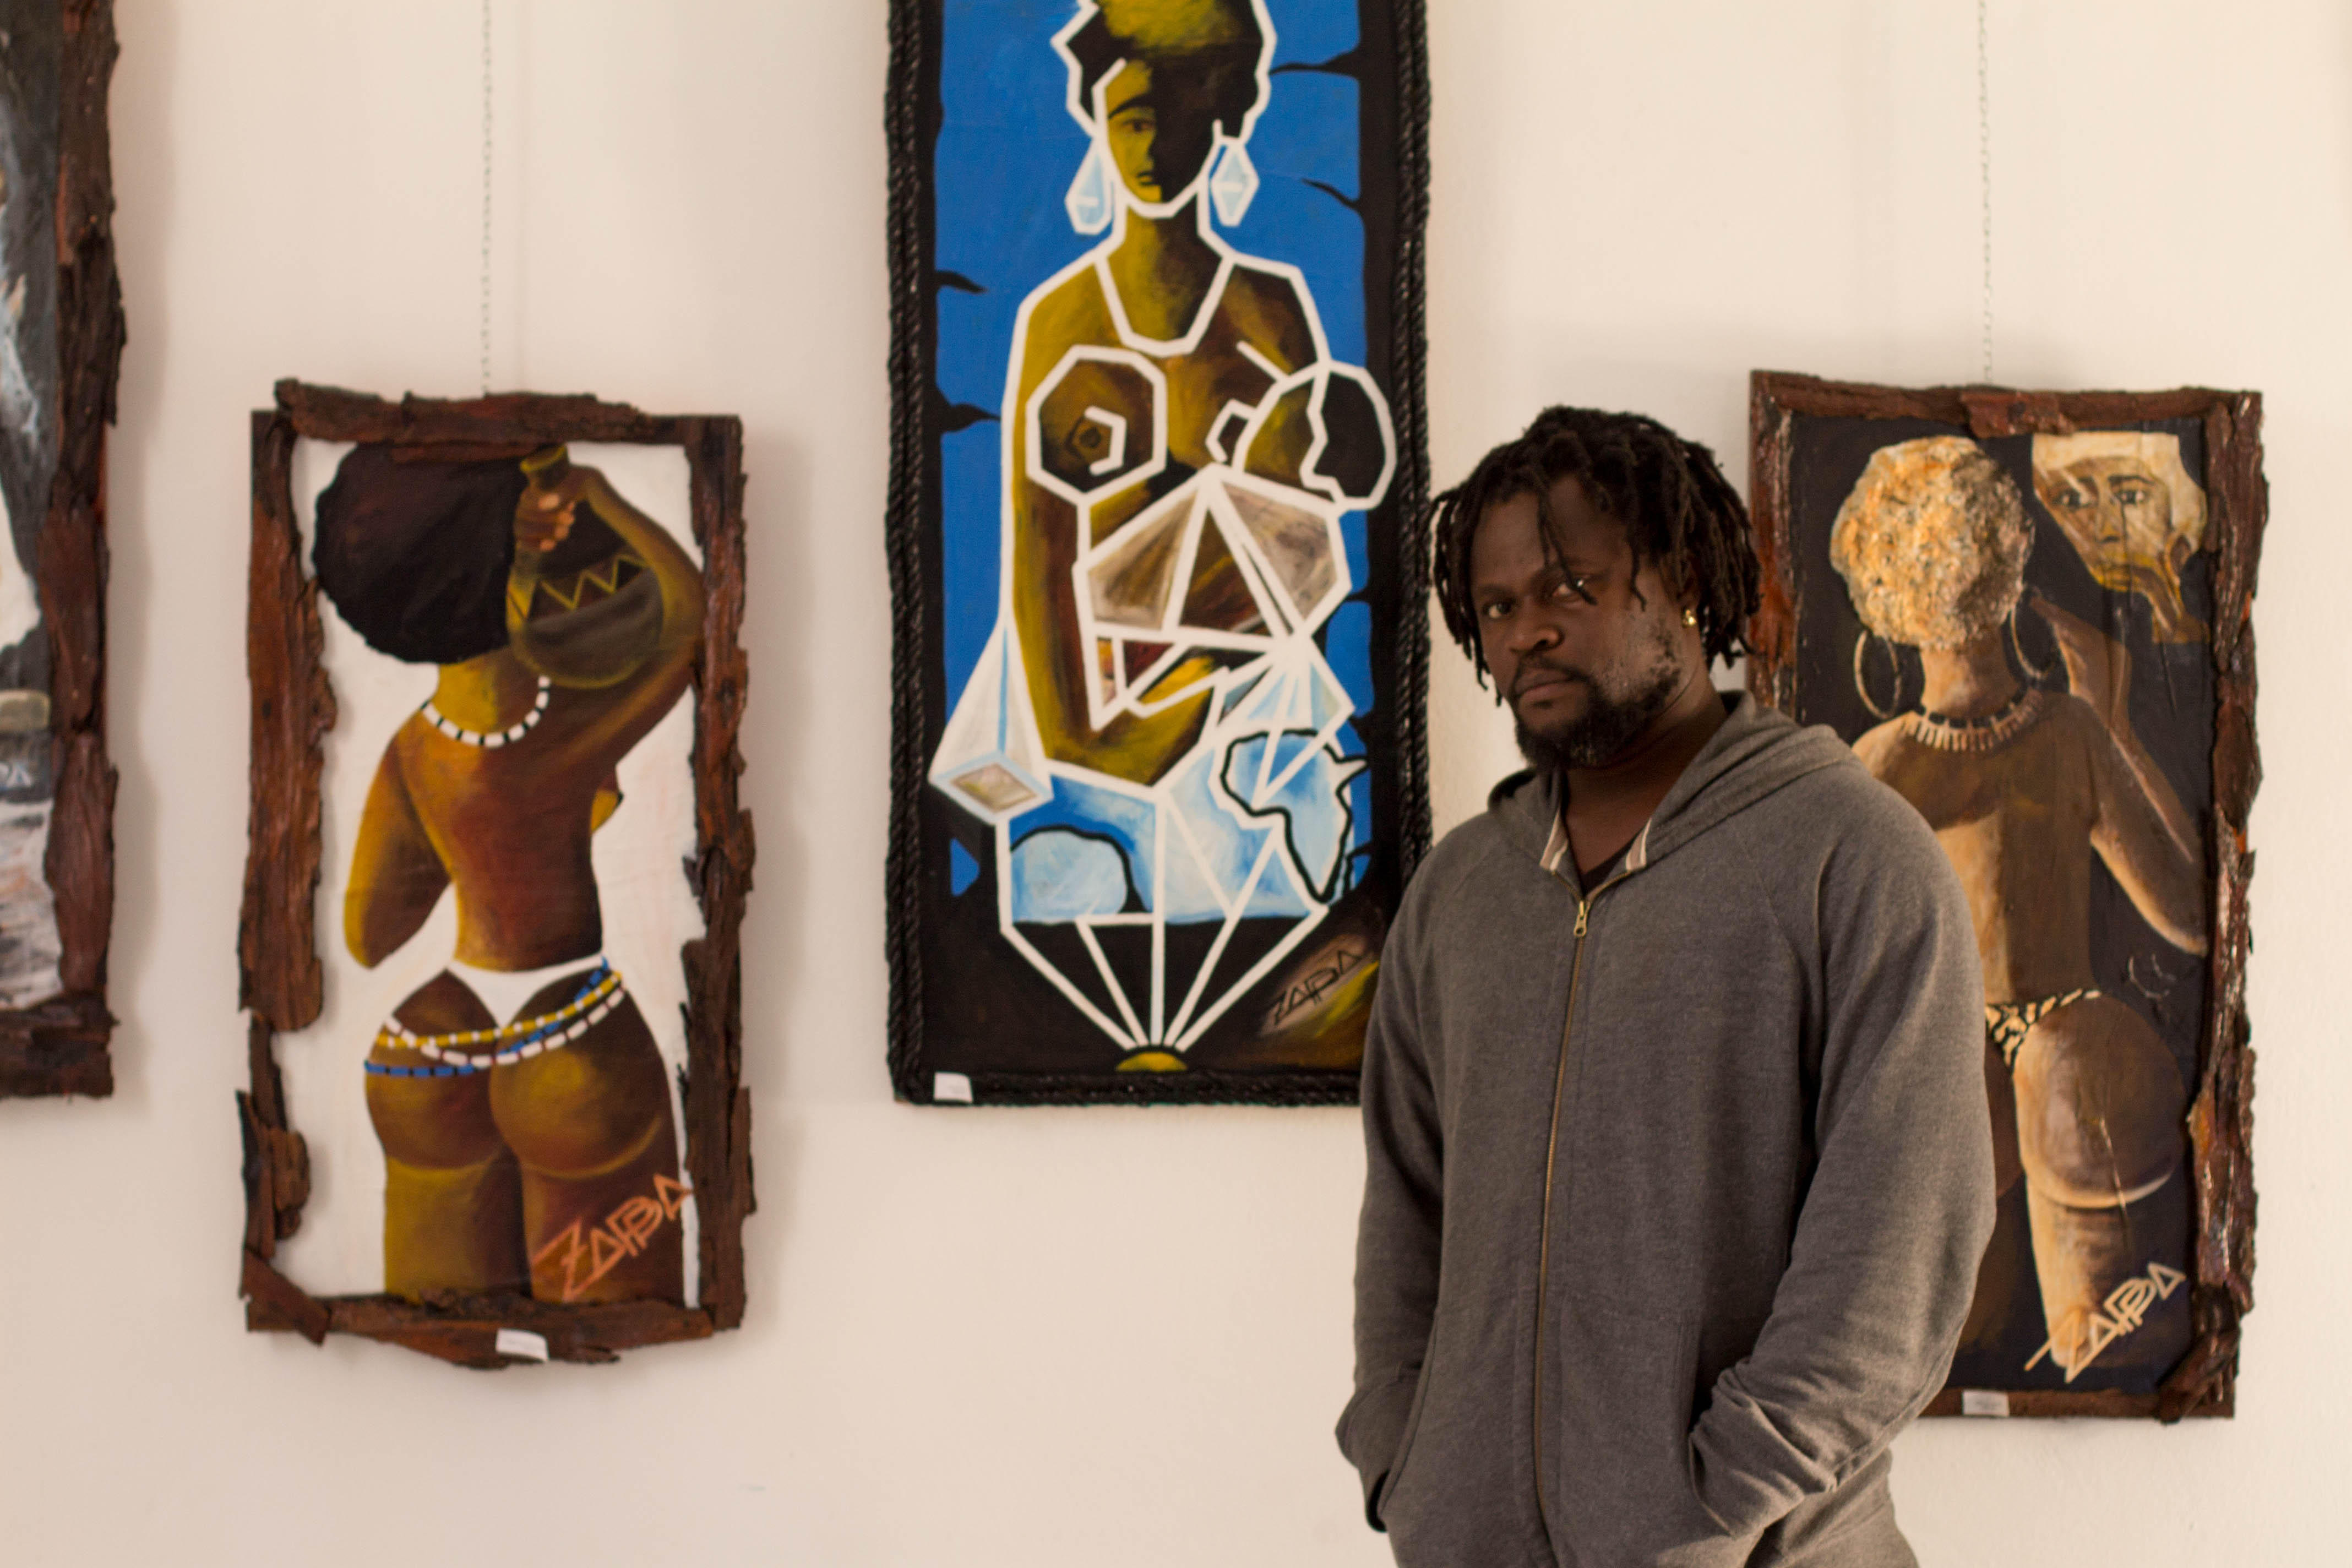 Zappa poses with three of his paintings that hang in the ACC's indoor art gallery. He calls himself a master of the African female form. His work is imbued with the spirit of Africa, and he often inserts symbols, like the outline of Africa, into his paintings. Photo by Allegra Thomas.